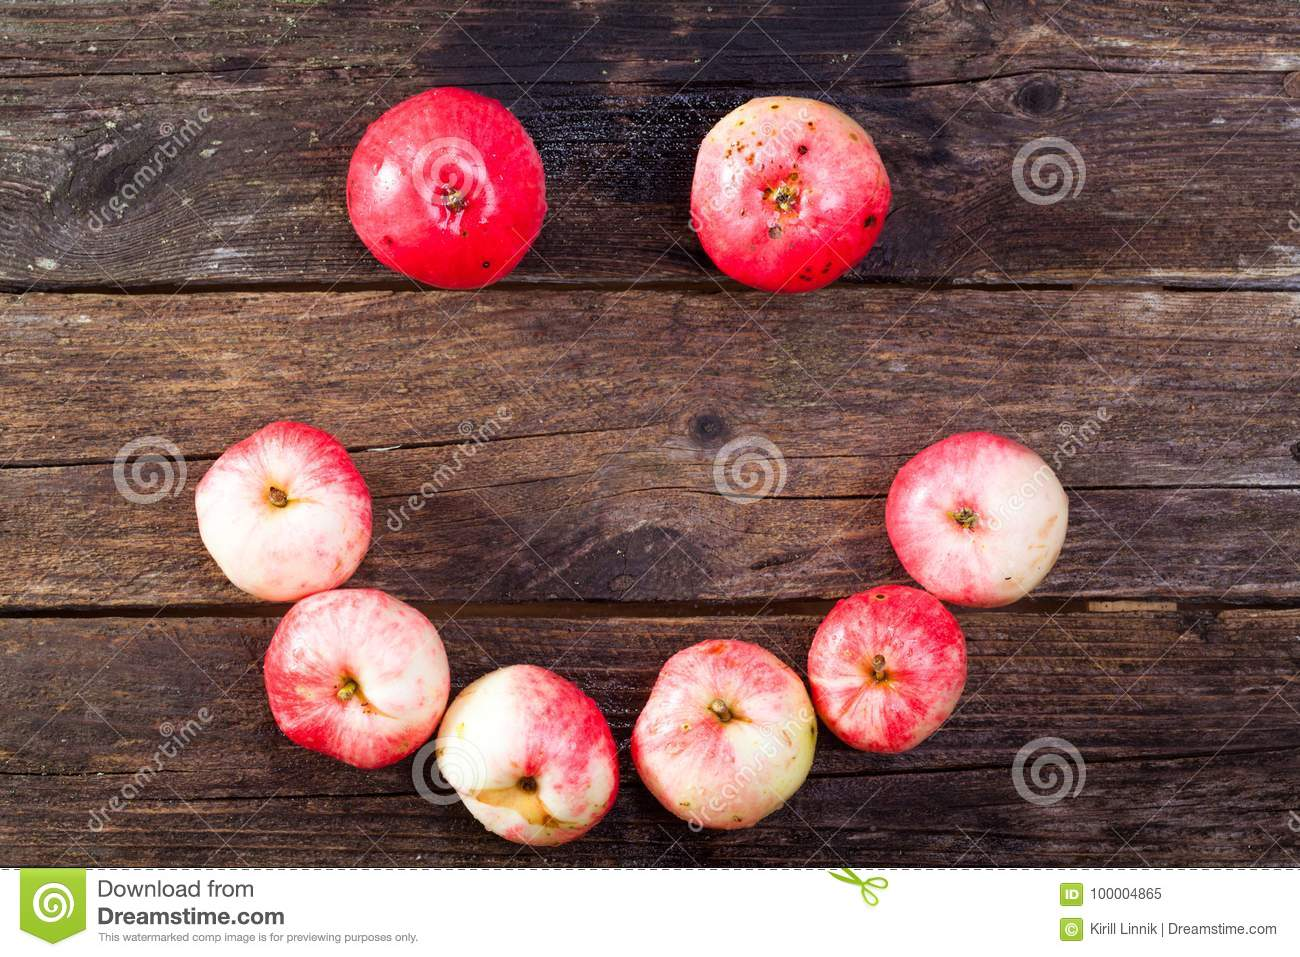 Download Red ripe apples stock image. Image of rustic, healthy - 100004865